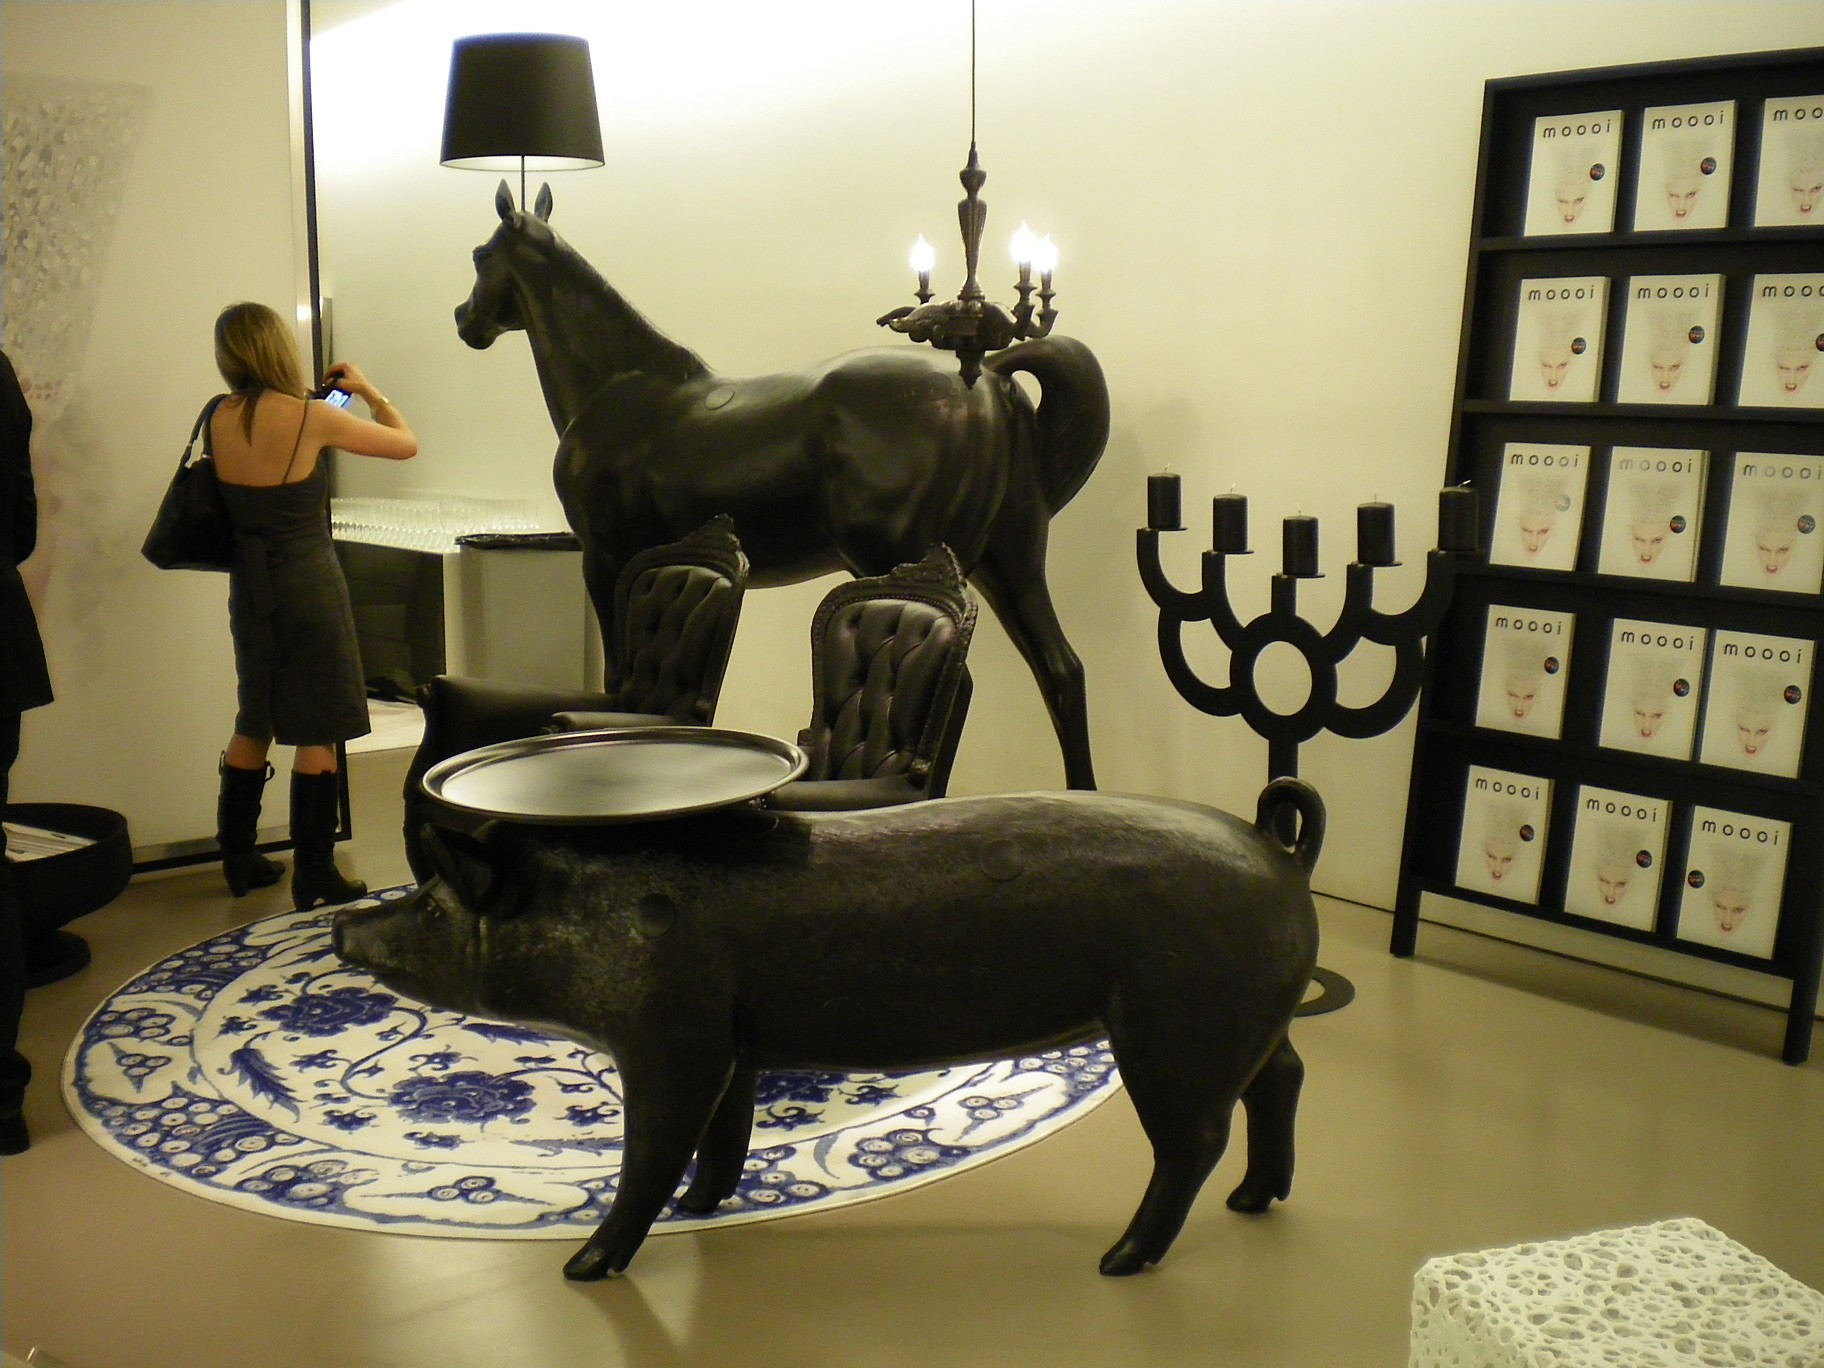 New York Tales: Greene Street Tales - smow Blog English for Moooi Lamp Horse  155fiz